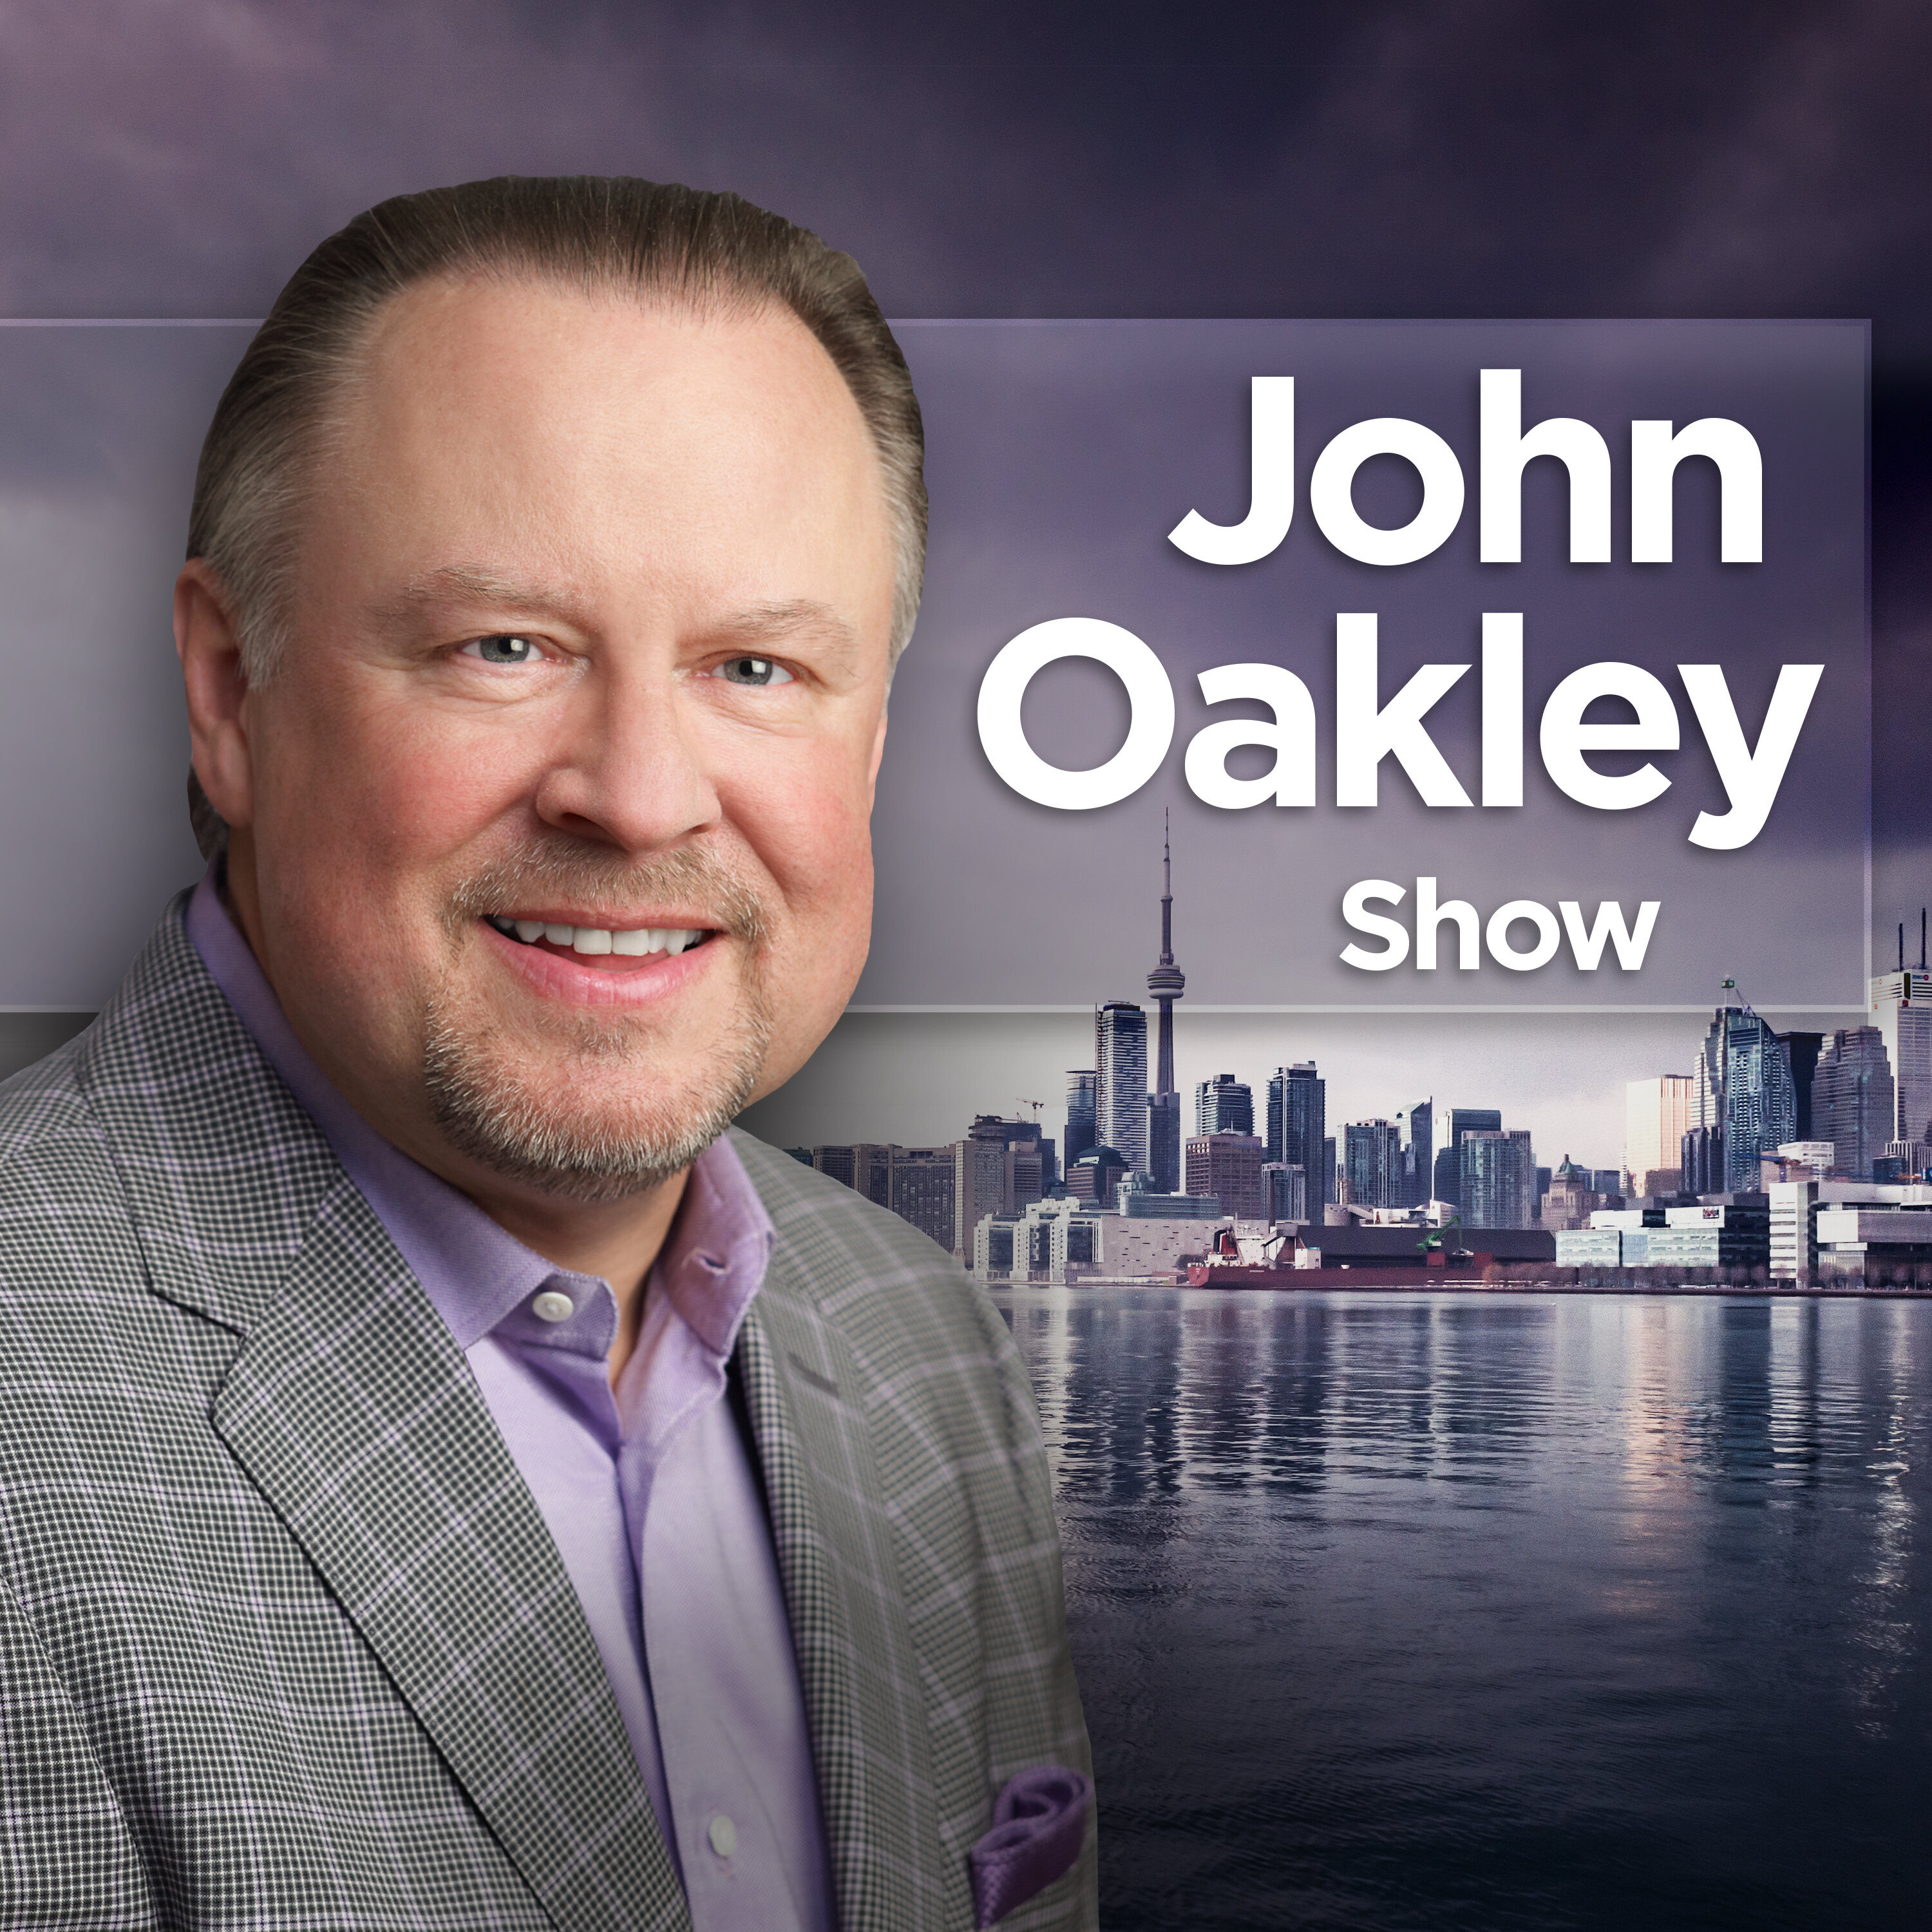 d0a4898601b The John Oakley Show on Apple Podcasts